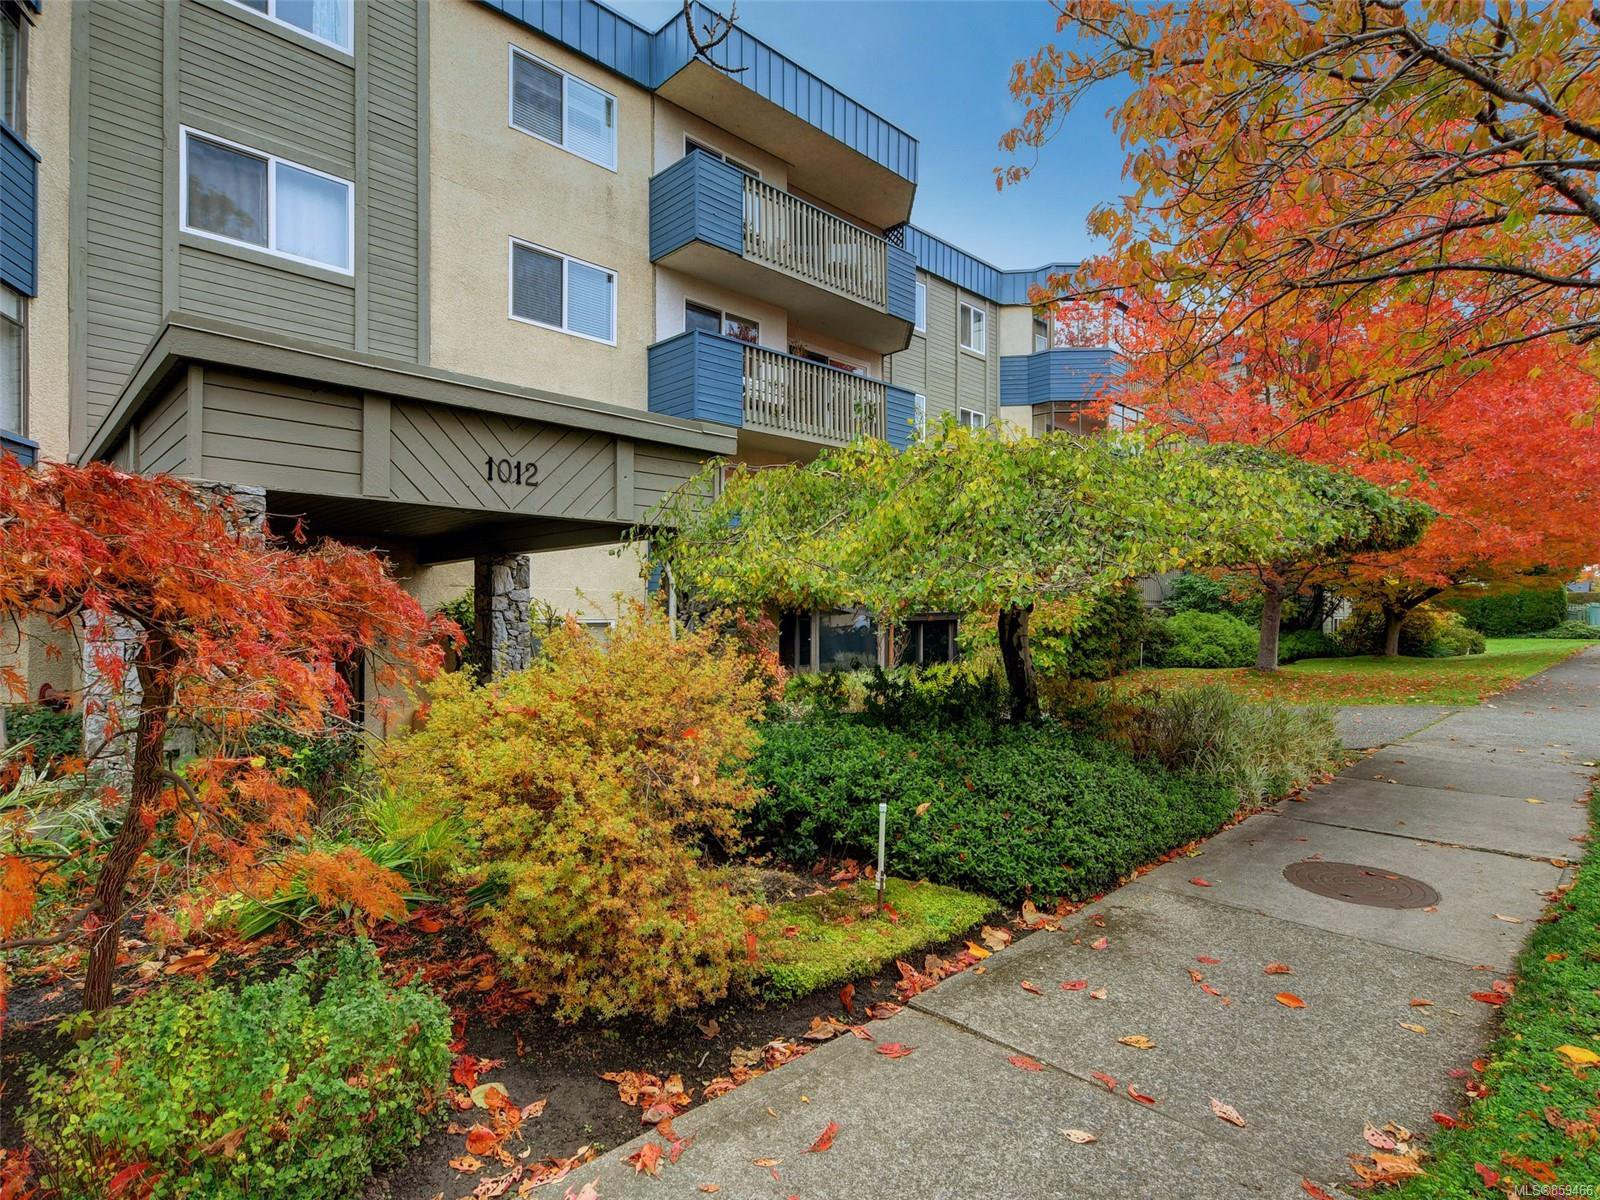 Main Photo: 209 1012 COLLINSON St in : Vi Fairfield West Condo for sale (Victoria)  : MLS®# 859466